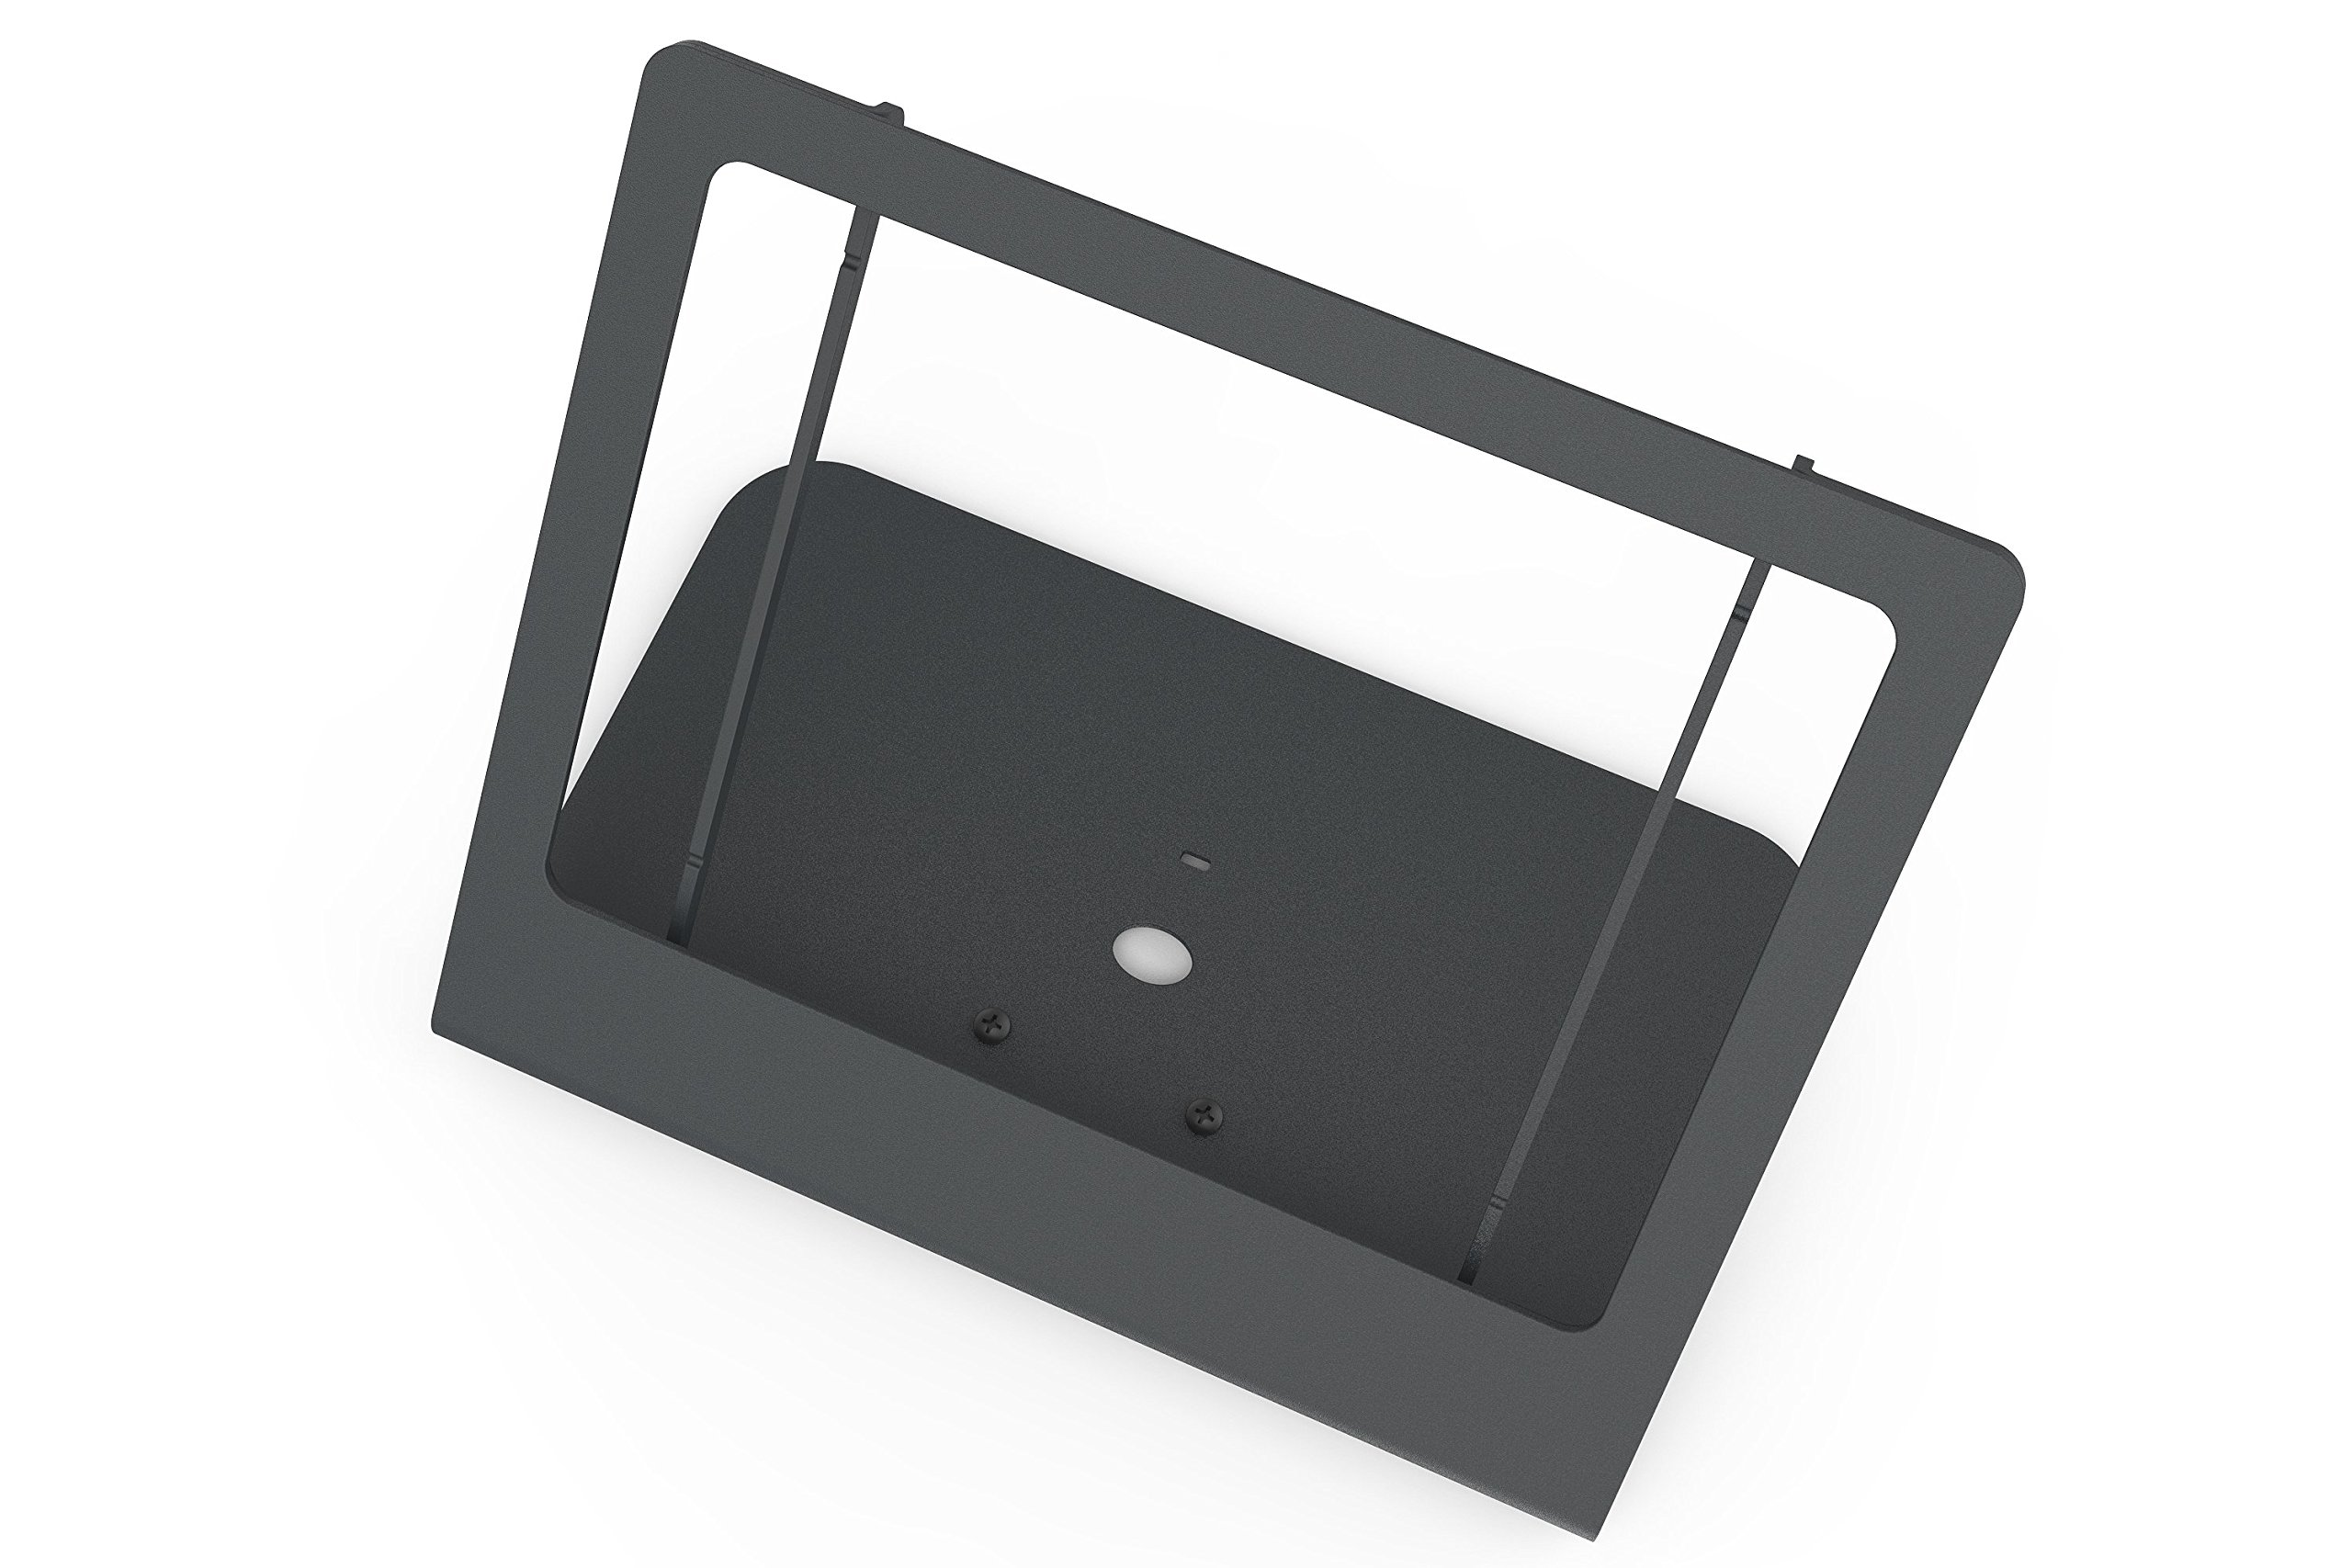 Heckler Design mPOS Checkout Stand for iPad Air with Optional iDynamo 5 Support (Black/Grey) by Heckler Design (Image #9)